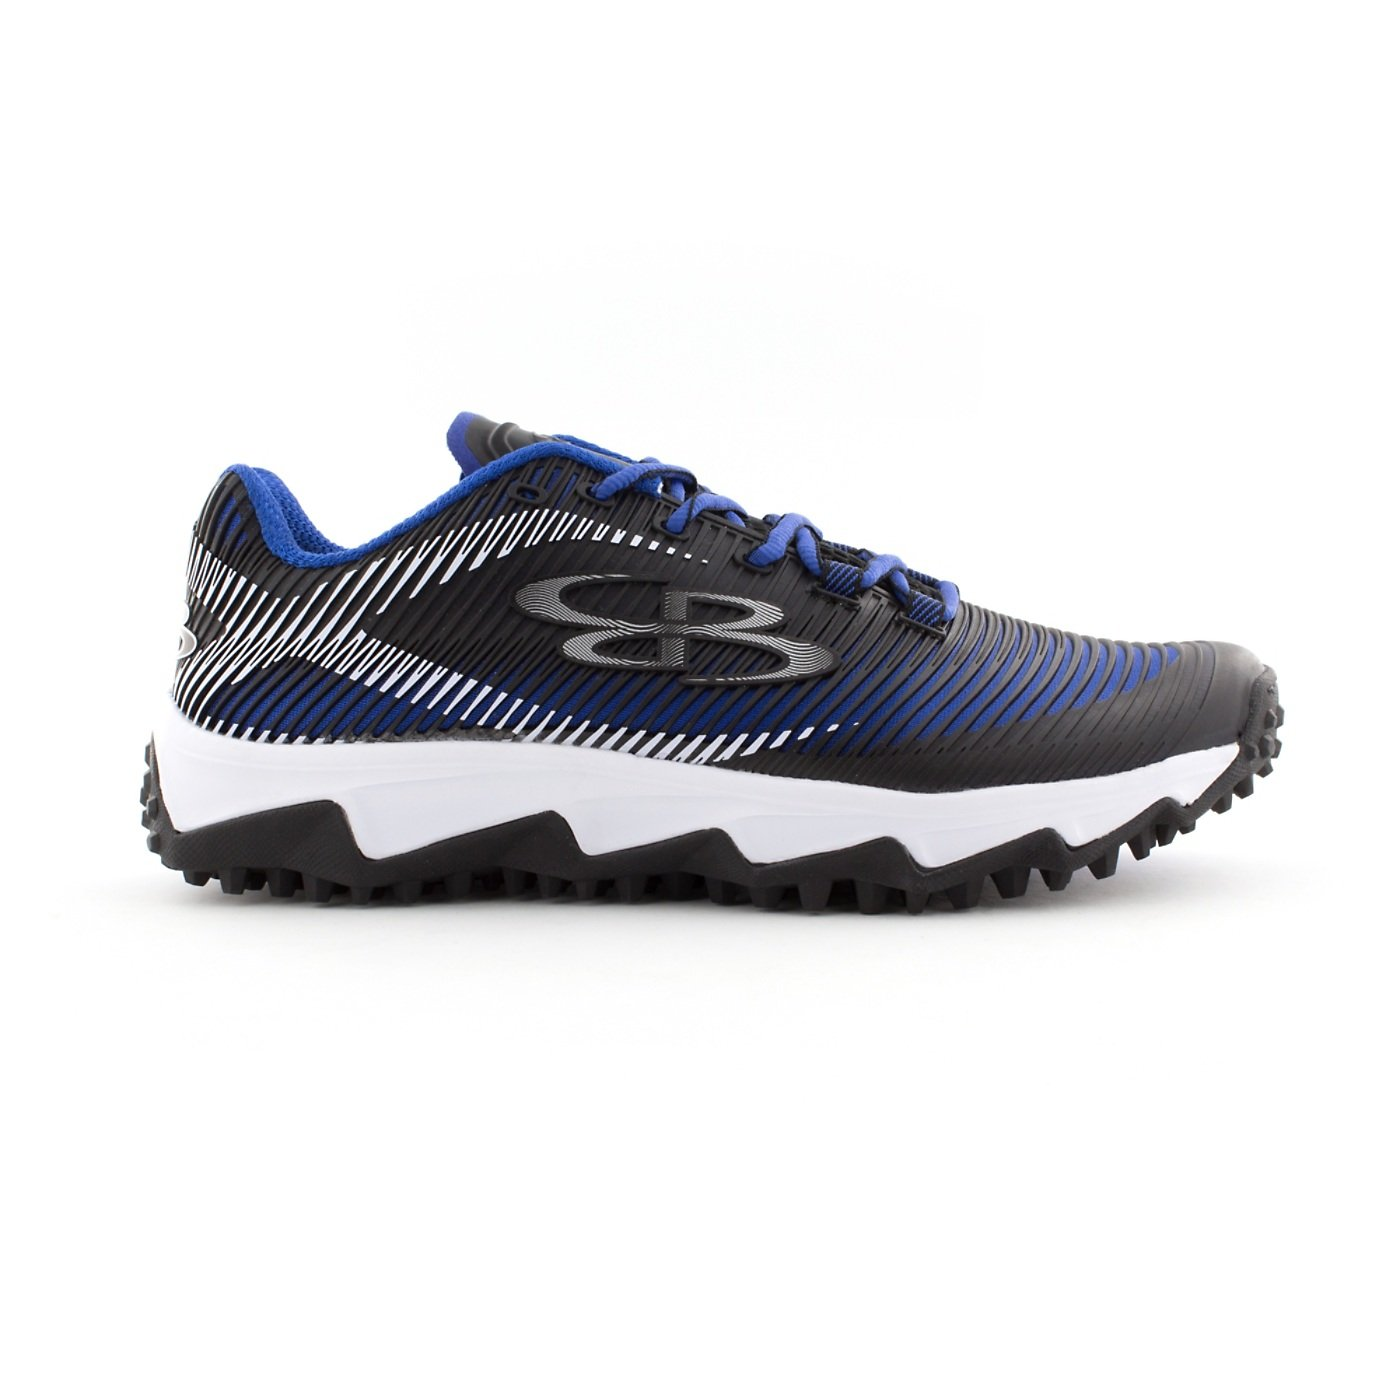 Boombah Men's Aftershock DPS Turf Shoes - 18 Color Options - Multiple Sizes B0767PLGTL 14|Black/Royal